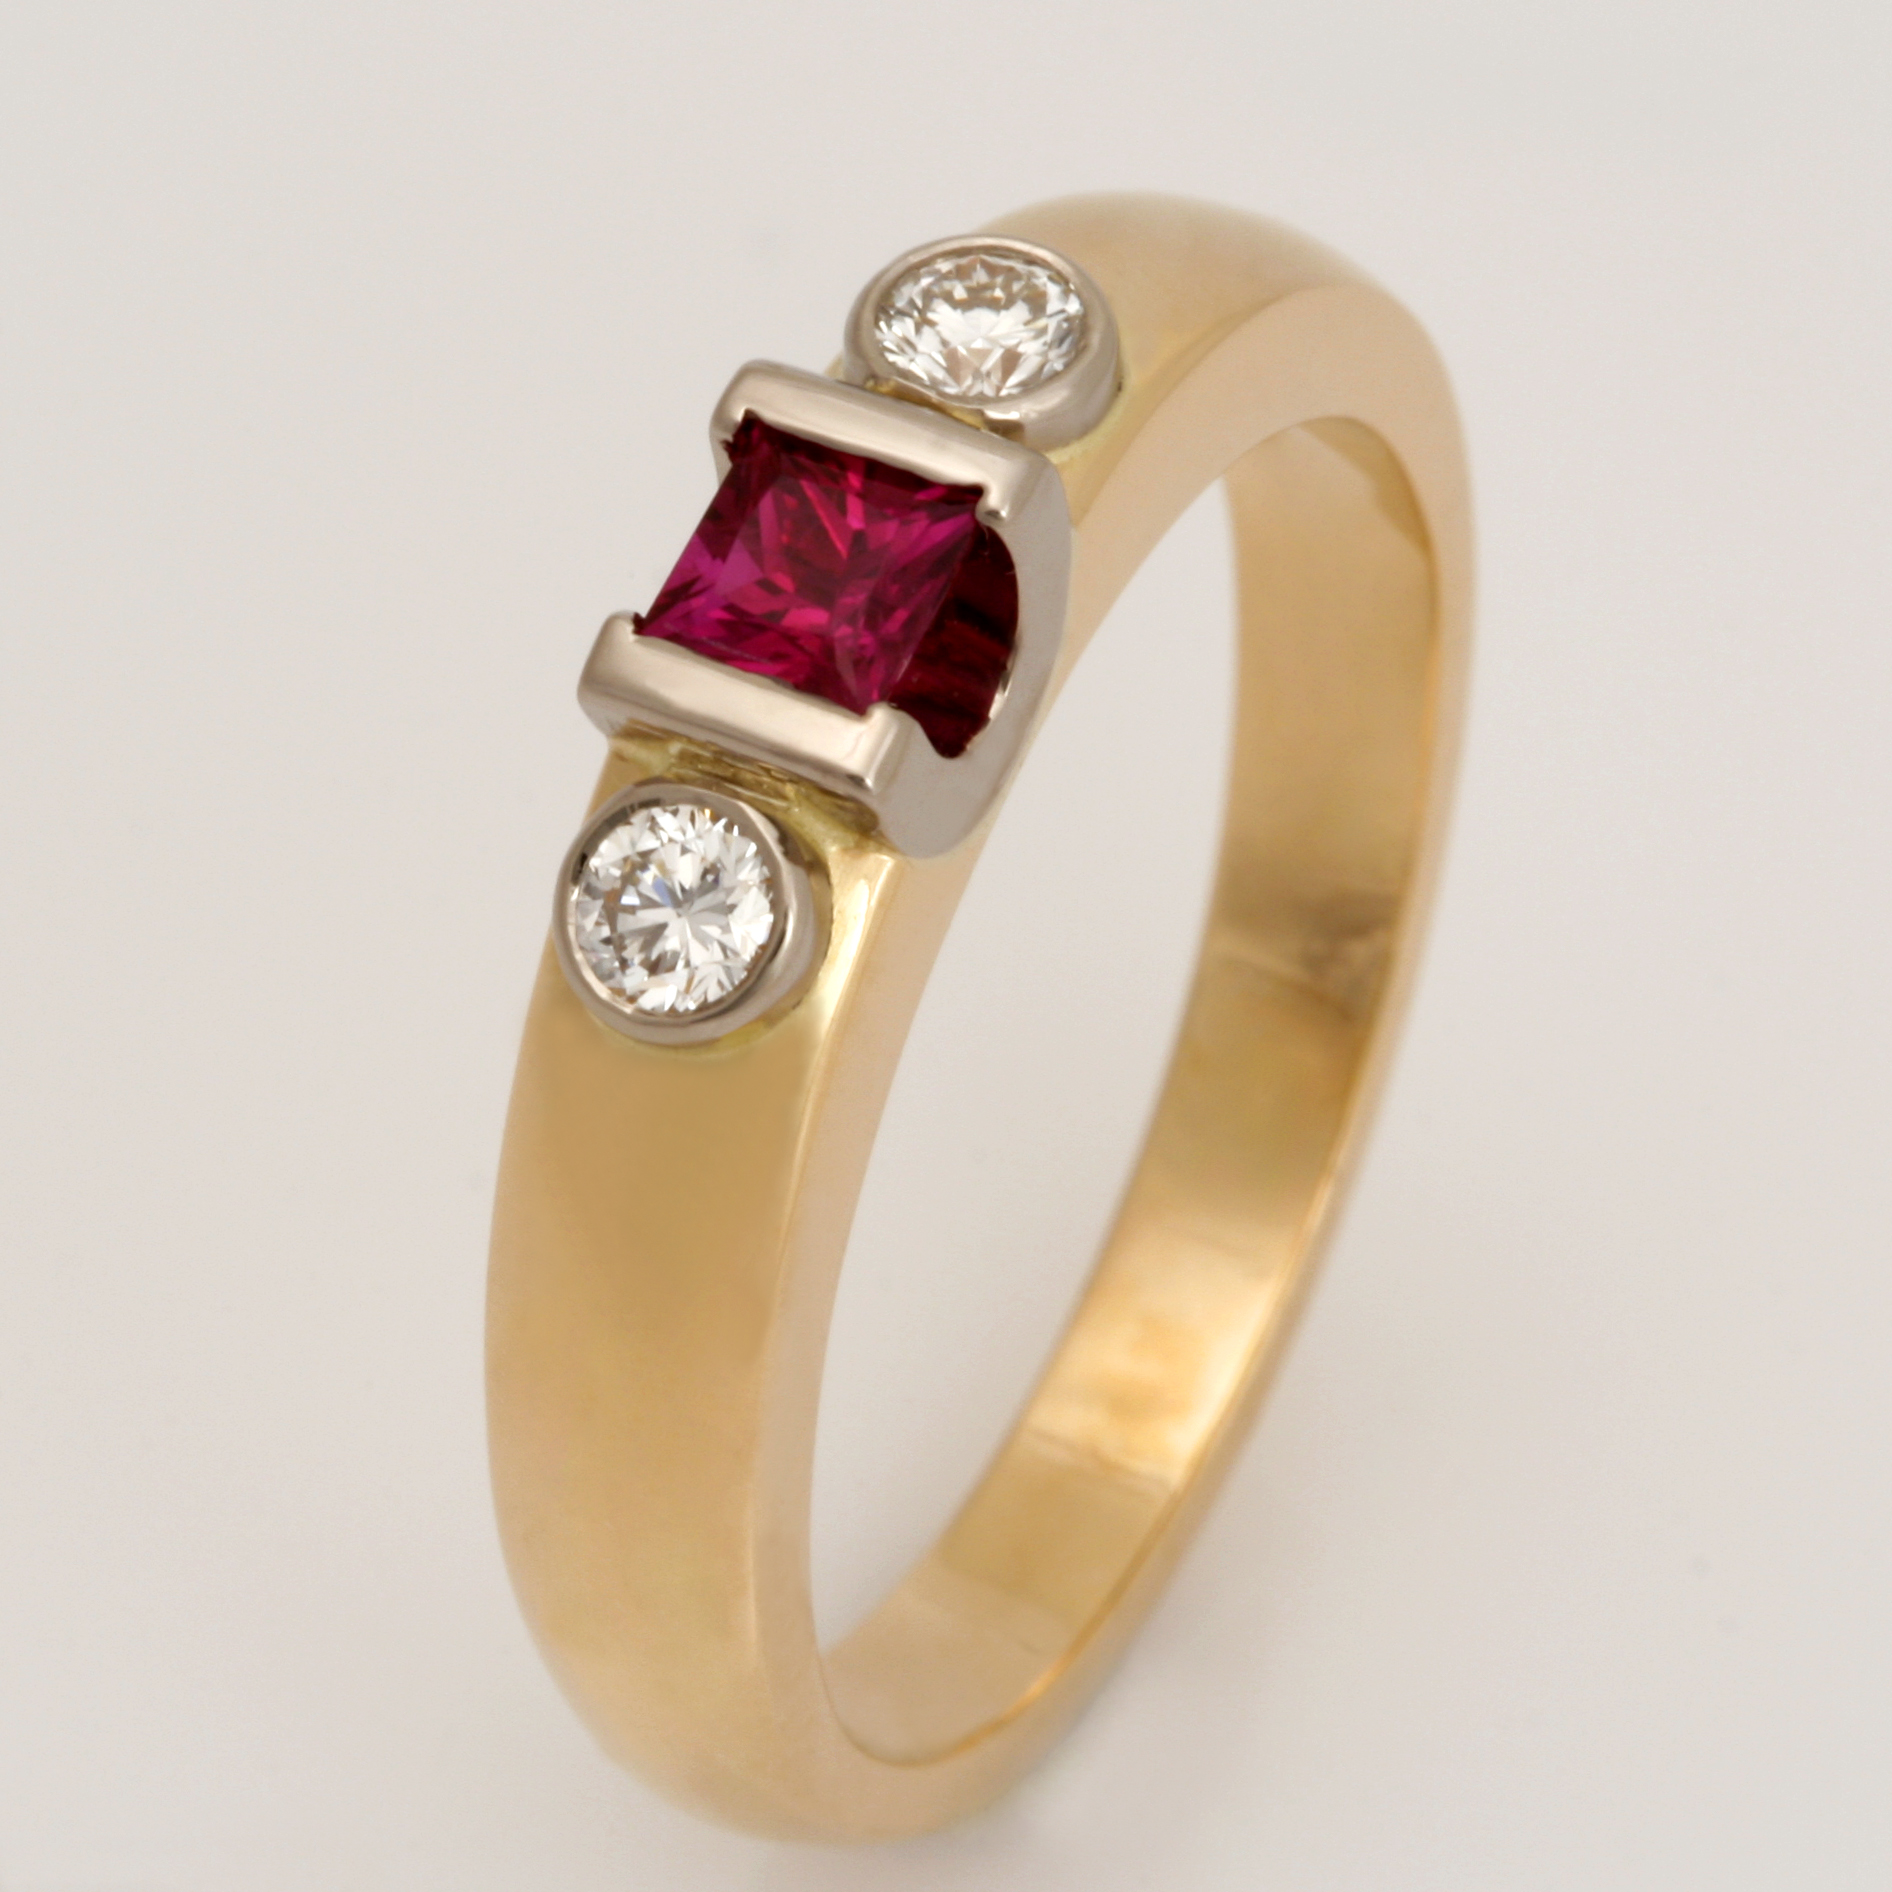 Handmade ladies 18ct yellow gold ring featuring a Burmese ruby and diamonds